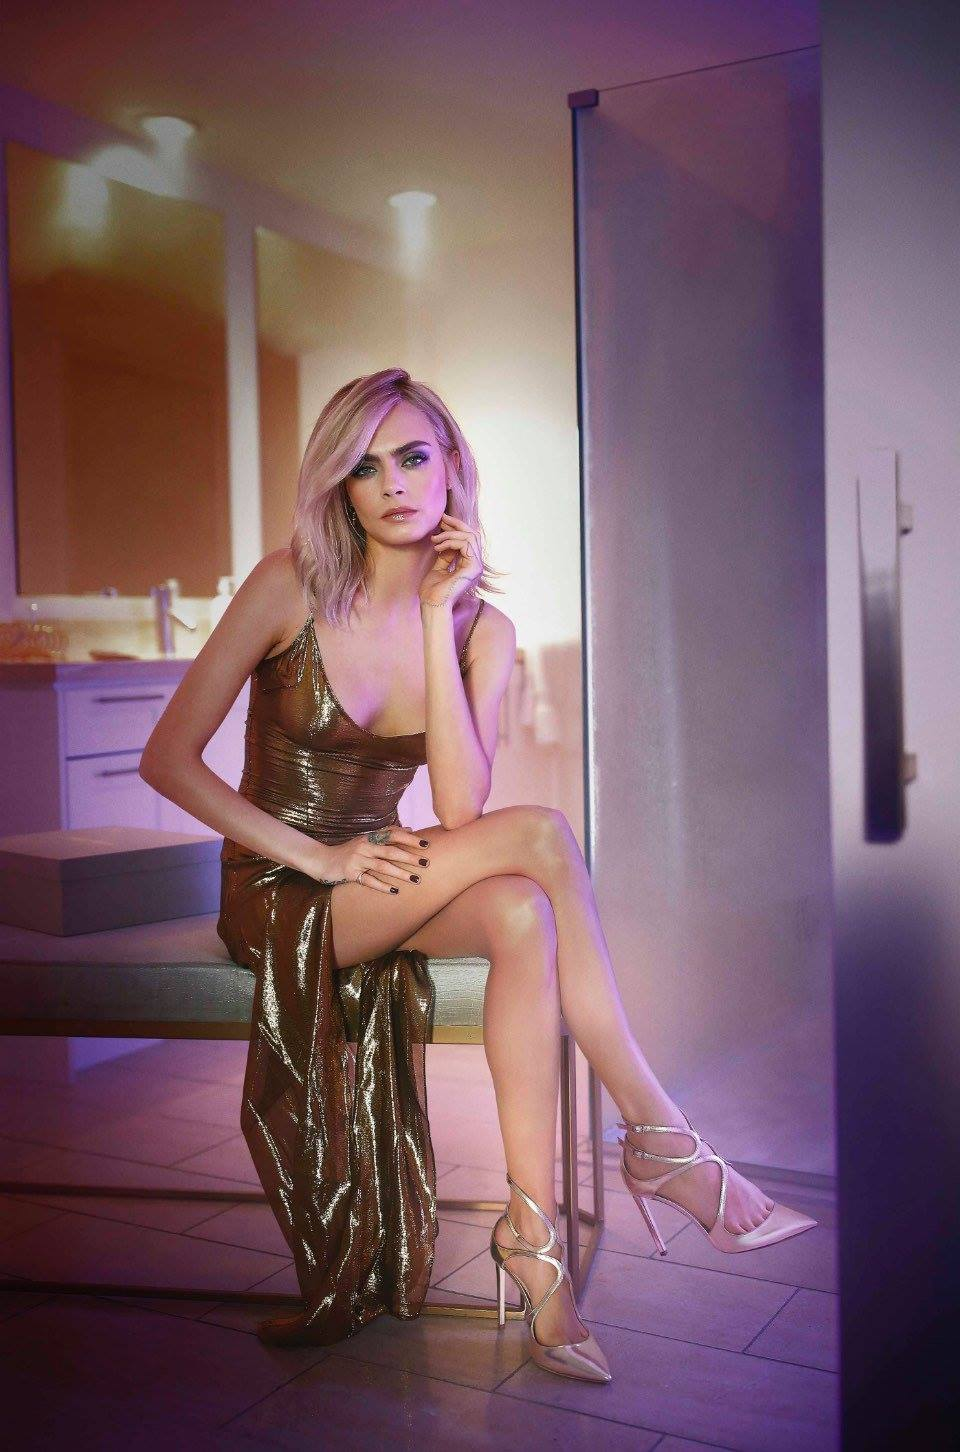 Jimmy Choo | 'Shimmer in the Dark' Campaign featuring Cara Delevingne